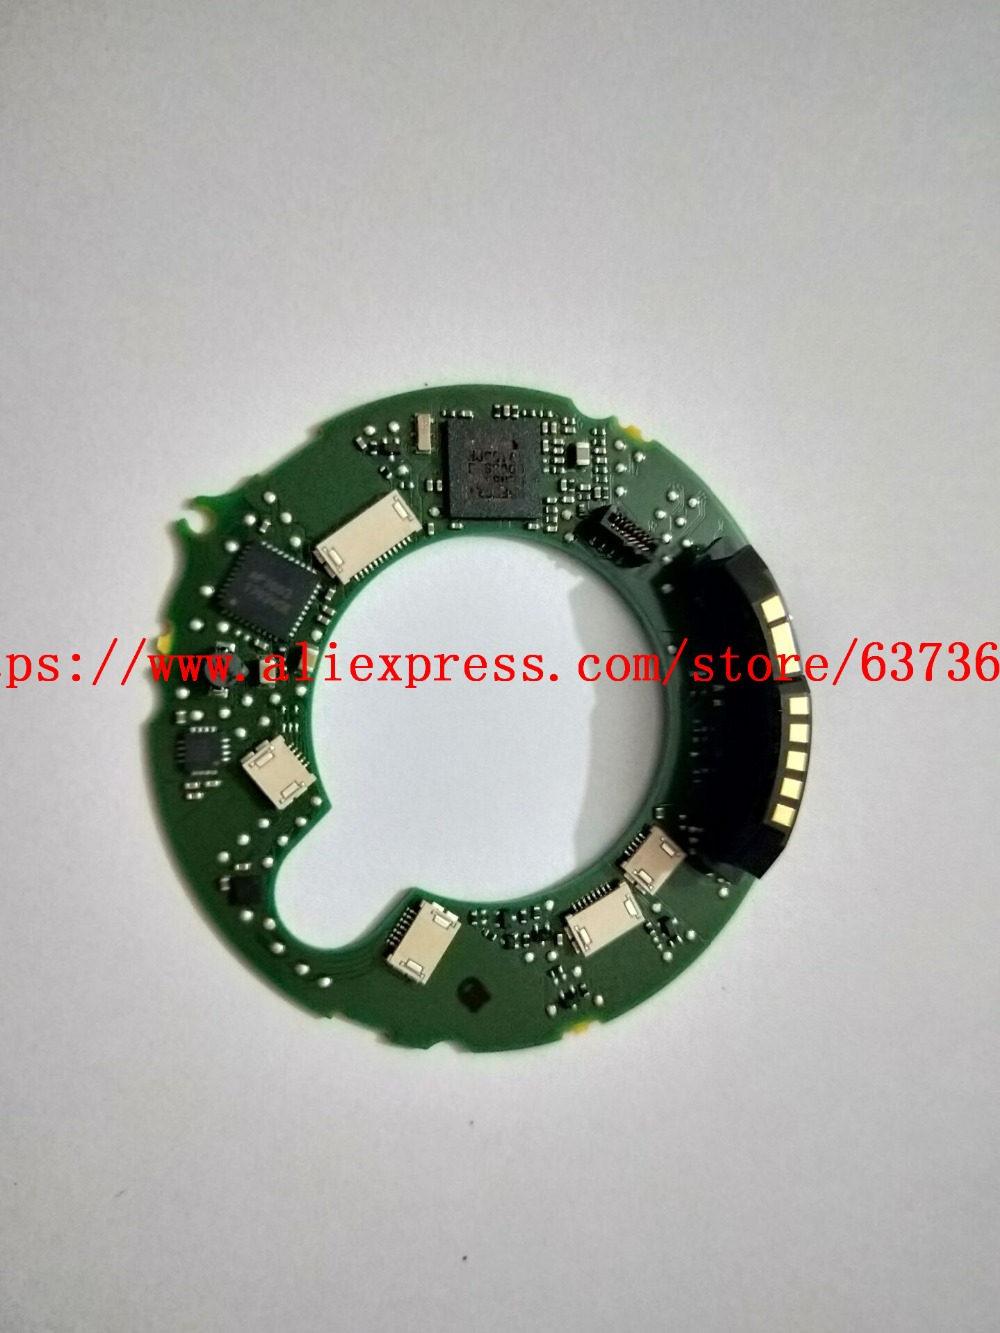 new 10-18 mm for Canon EF-S 10-18mm f/4.5-5.6 IS STM Main Board PCB Assembly Replacement Part new motherboard main circuit board pcb repair parts for canon ef s 10 18mm f 4 5 5 6 is stm lens